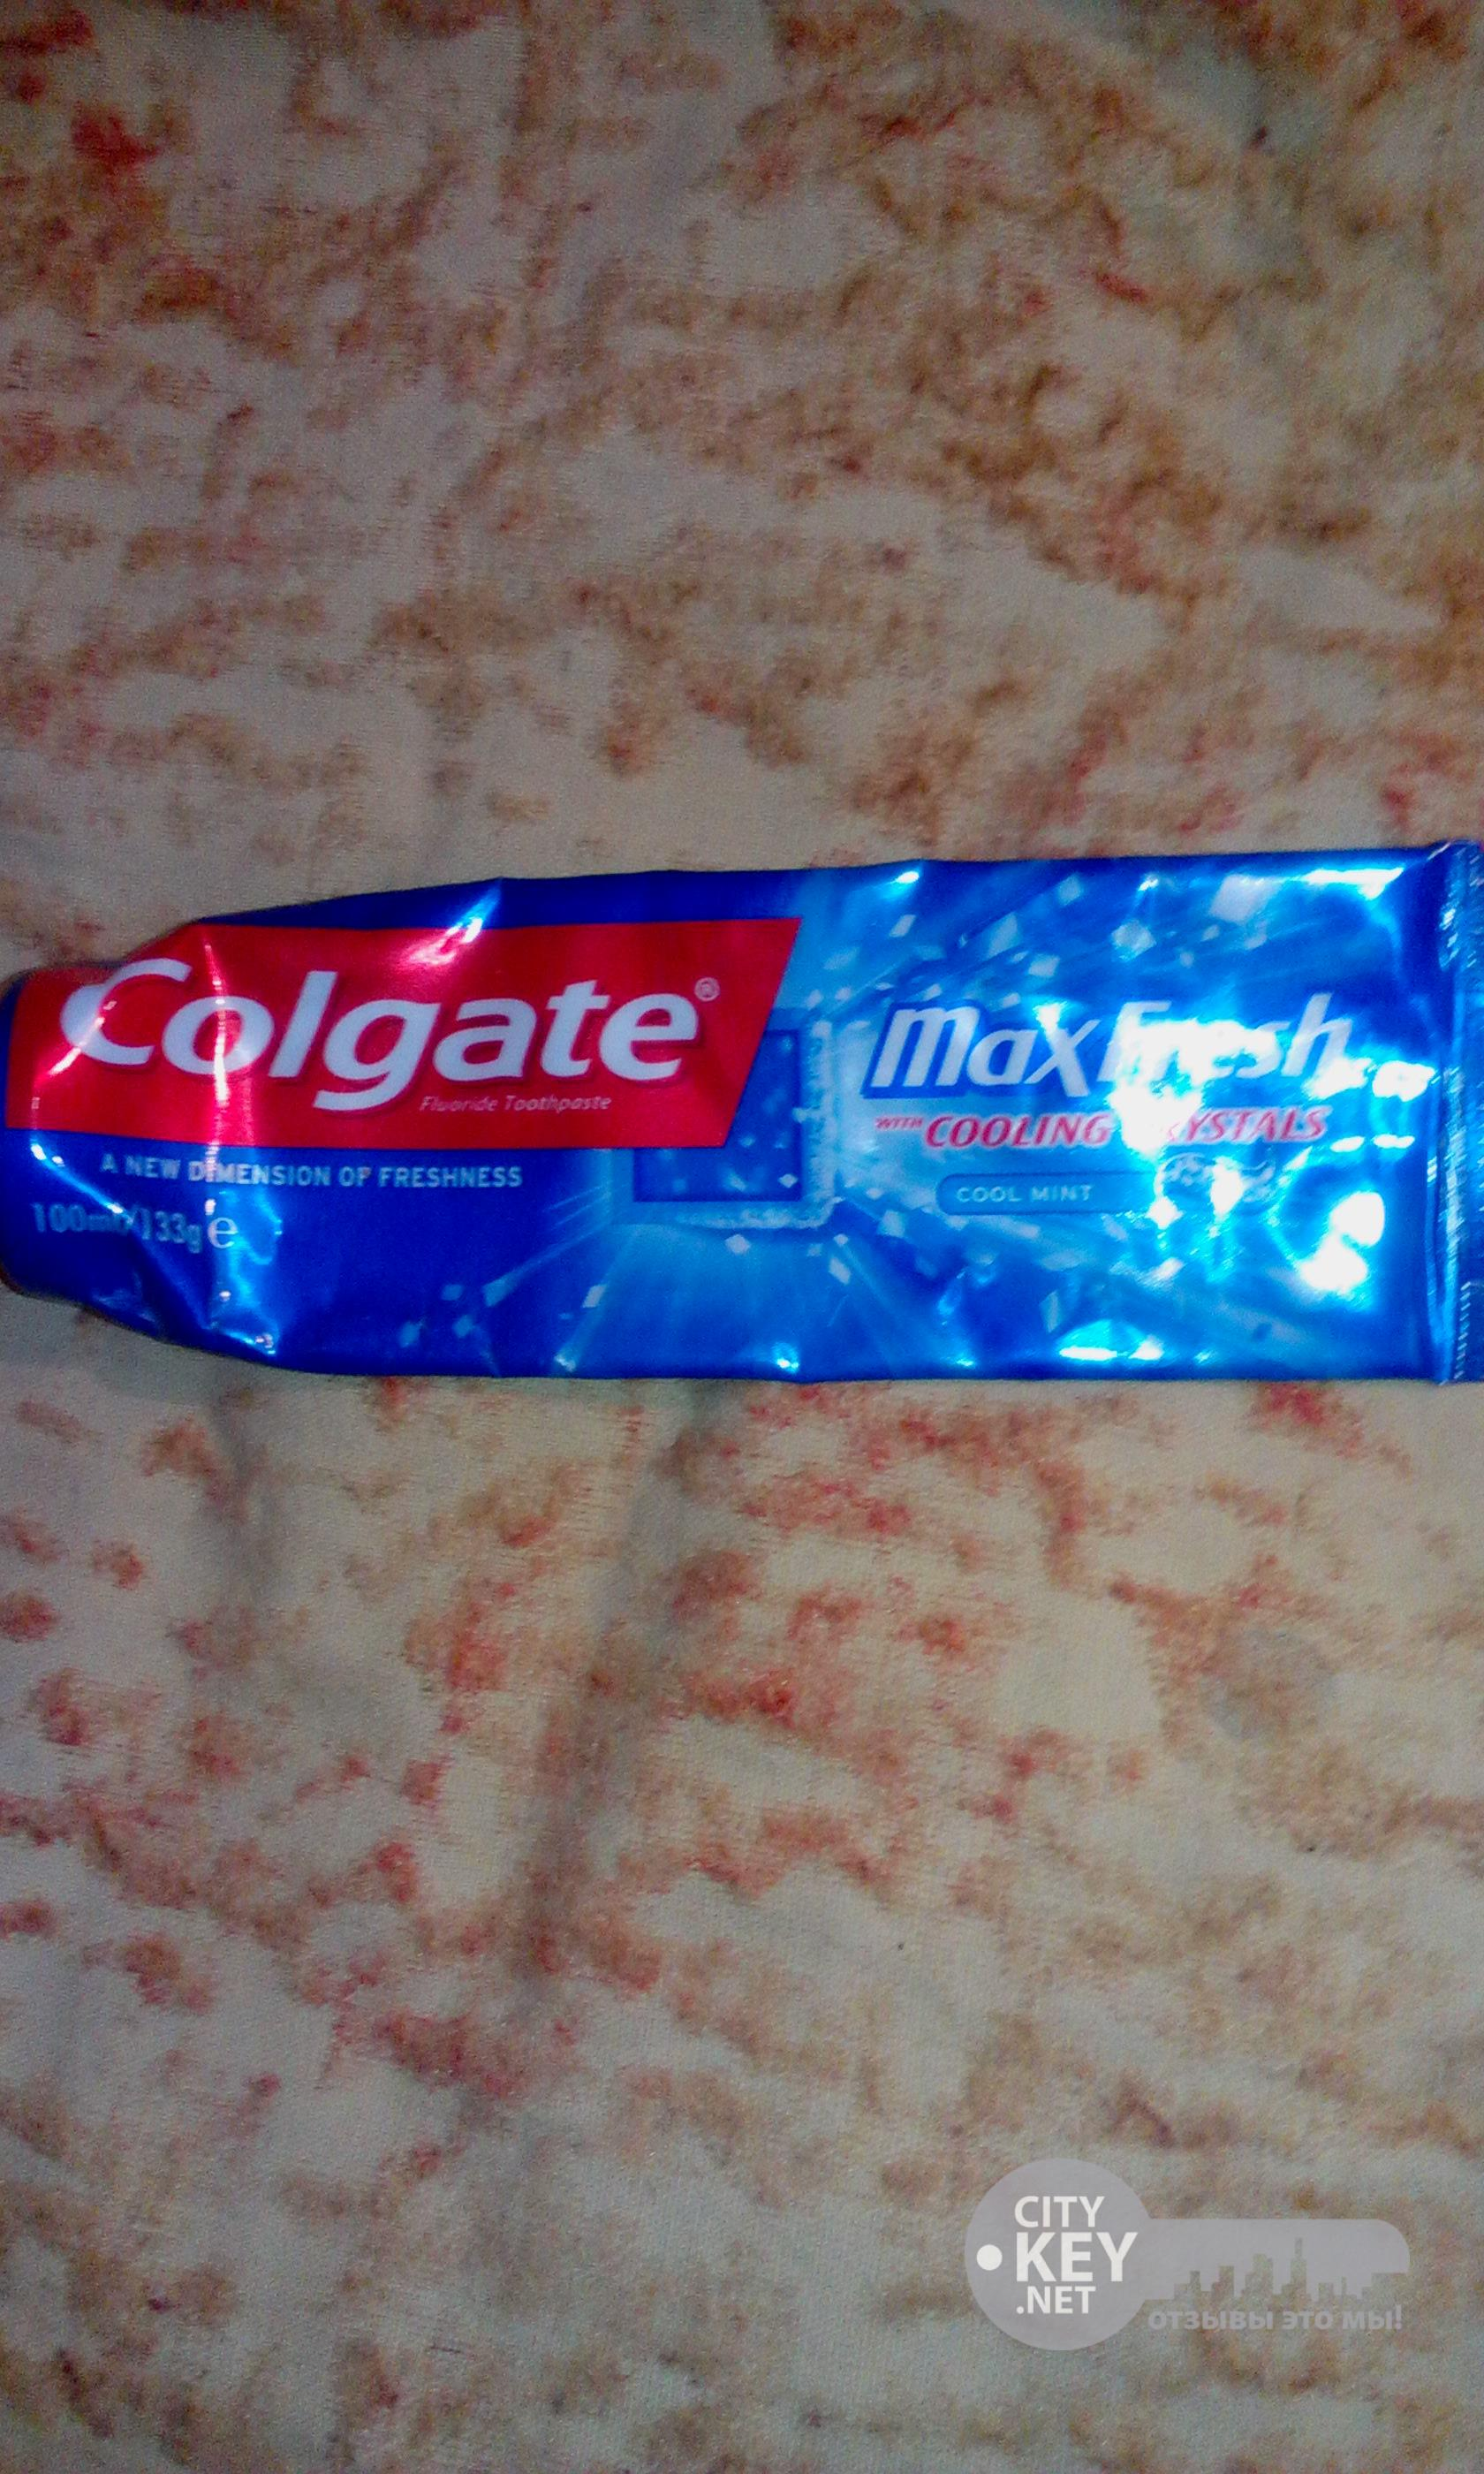 colgate max fresh essay Keywords: toothpaste competitor analysis, toothpaste competition it all began in 1806, when soap was commonly made at home william colgate had the genius idea to start selling individual portions of starch, soap and candles.